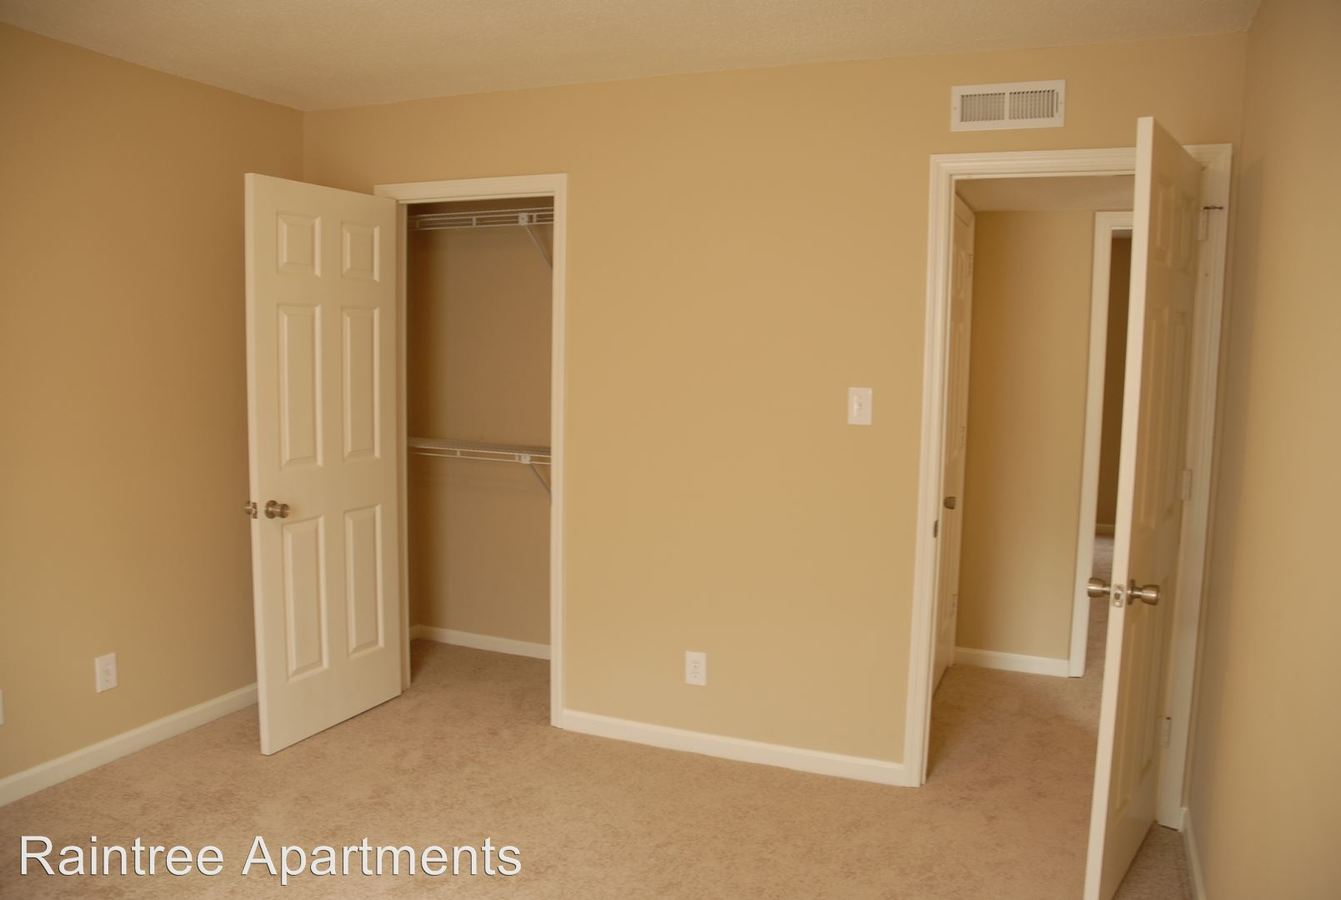 2 Bedrooms 1 Bathroom Apartment for rent at Raintree Apartments in Knoxville, TN